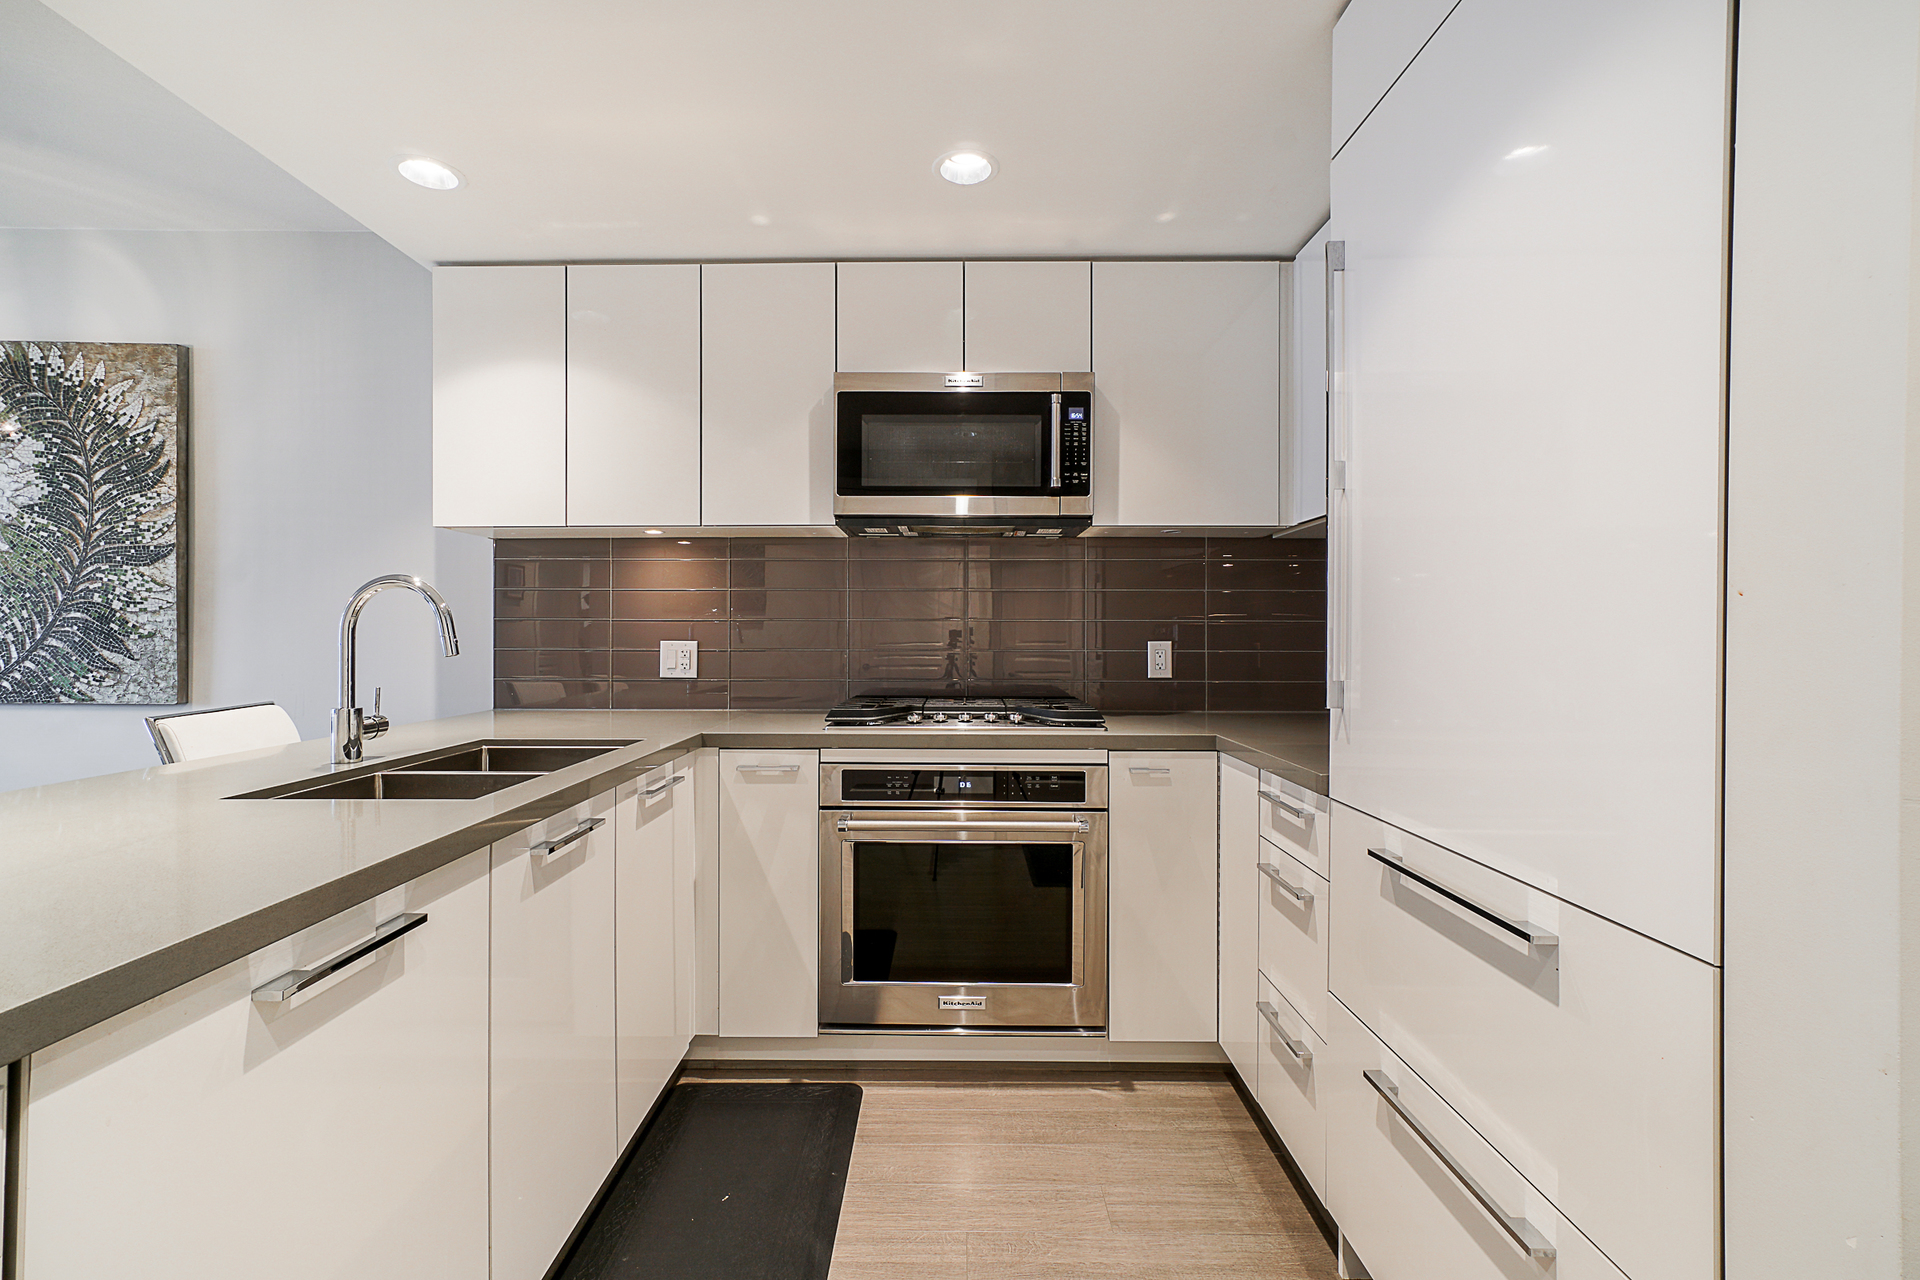 unit-2705-3093-windsor-gate-coquitlam-10 at 2705 - 3093 Windsor Gate, New Horizons, Coquitlam